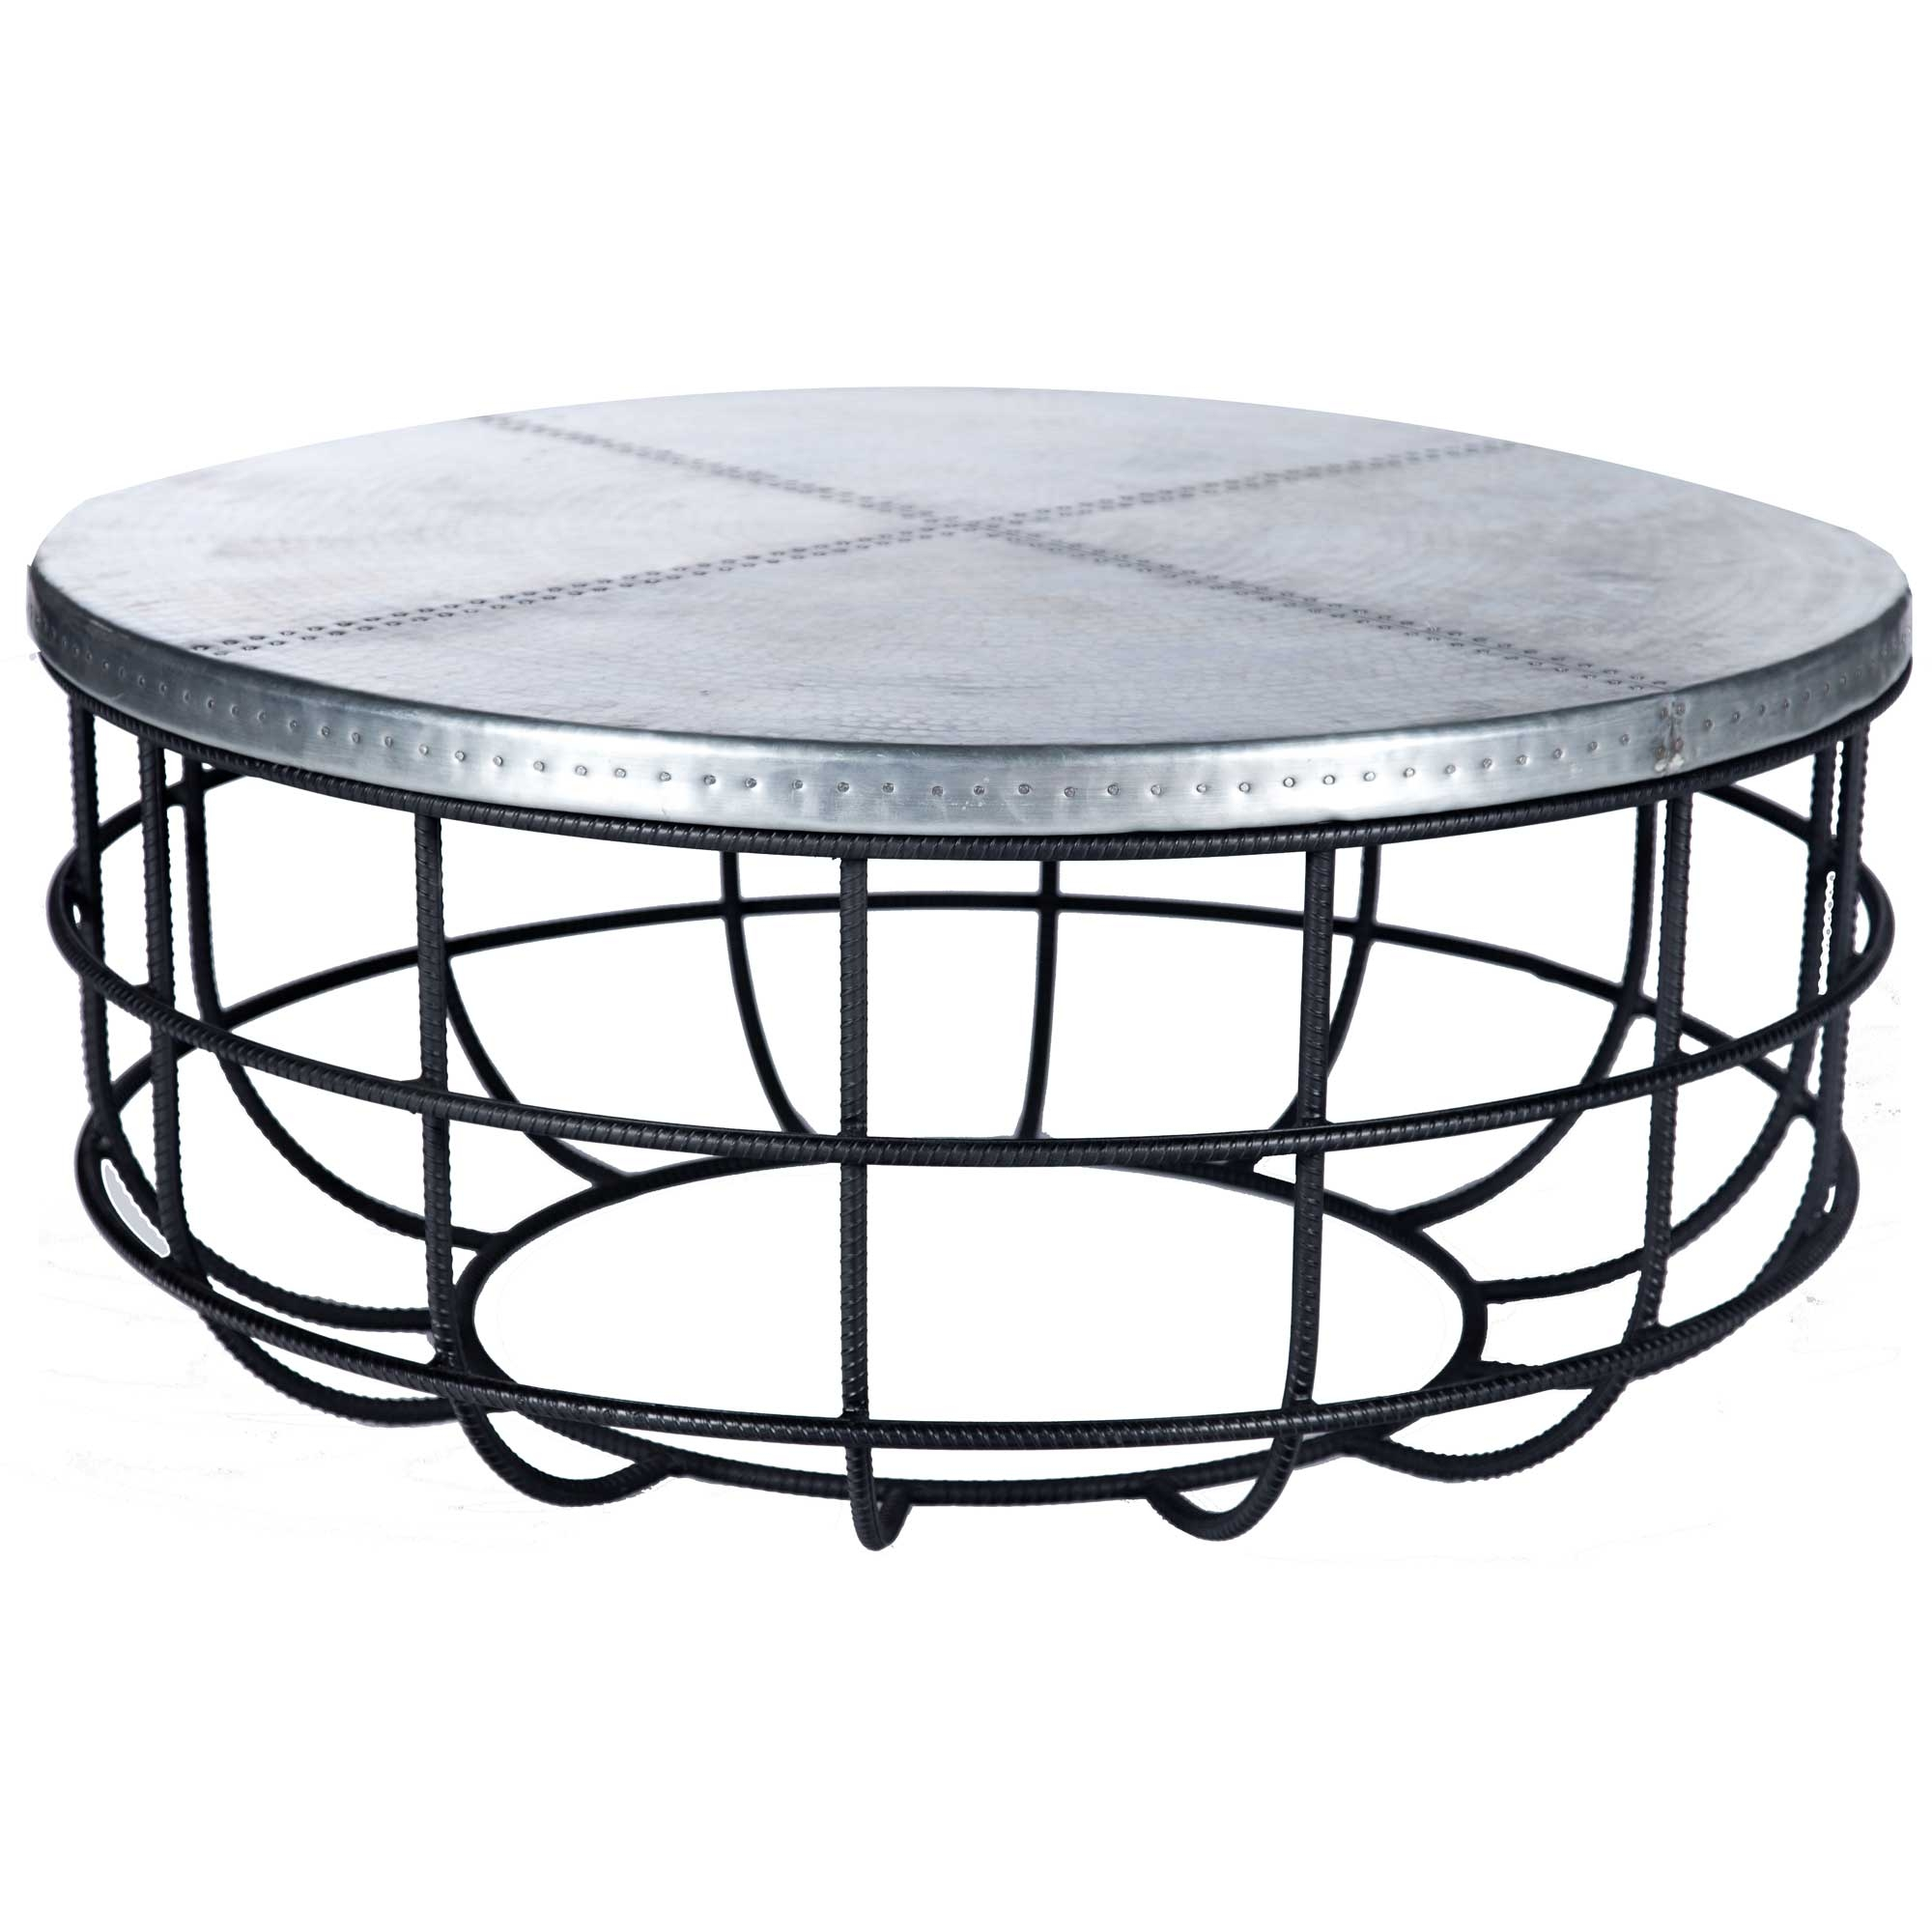 Remarkable Axel Iron Coffee Table With Round Hammered Zinc Top Gamerscity Chair Design For Home Gamerscityorg